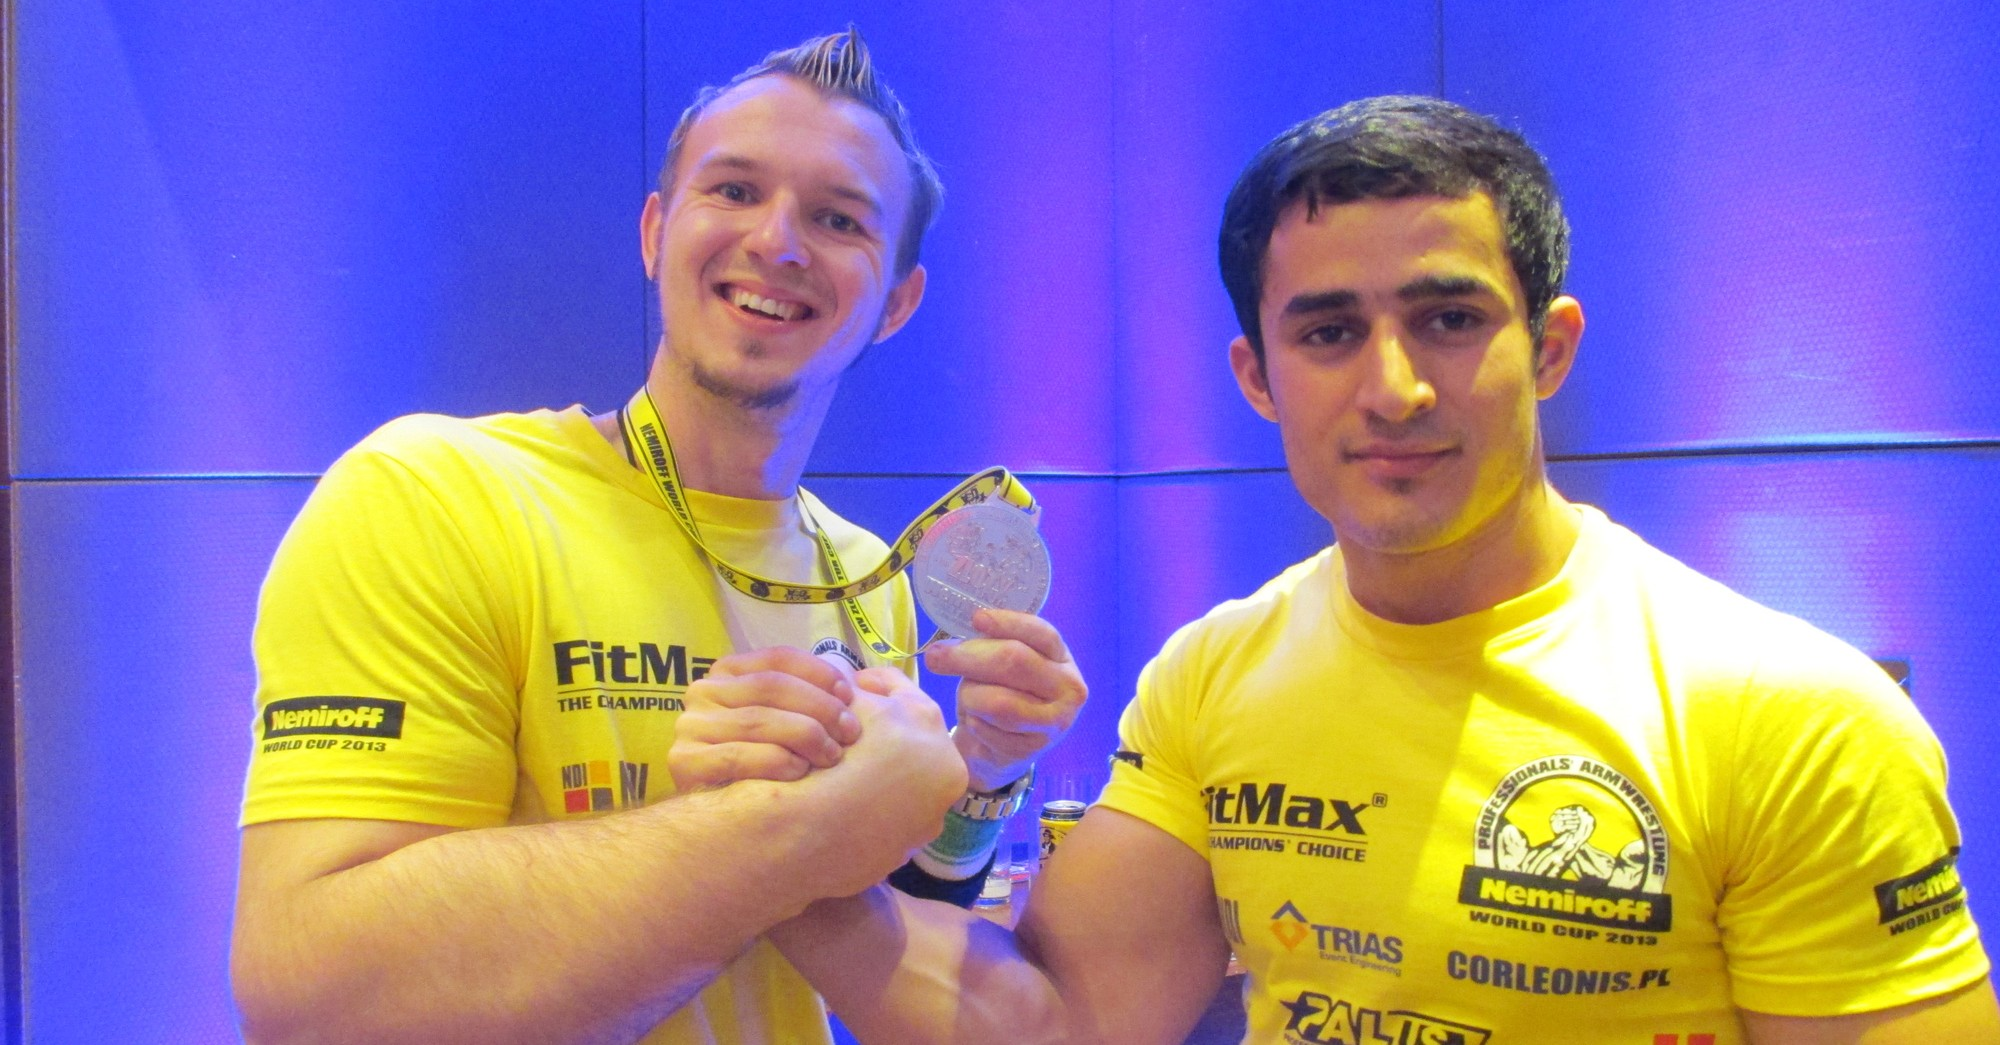 WorldCup 2013 - Schlitte and World Champion Farasov